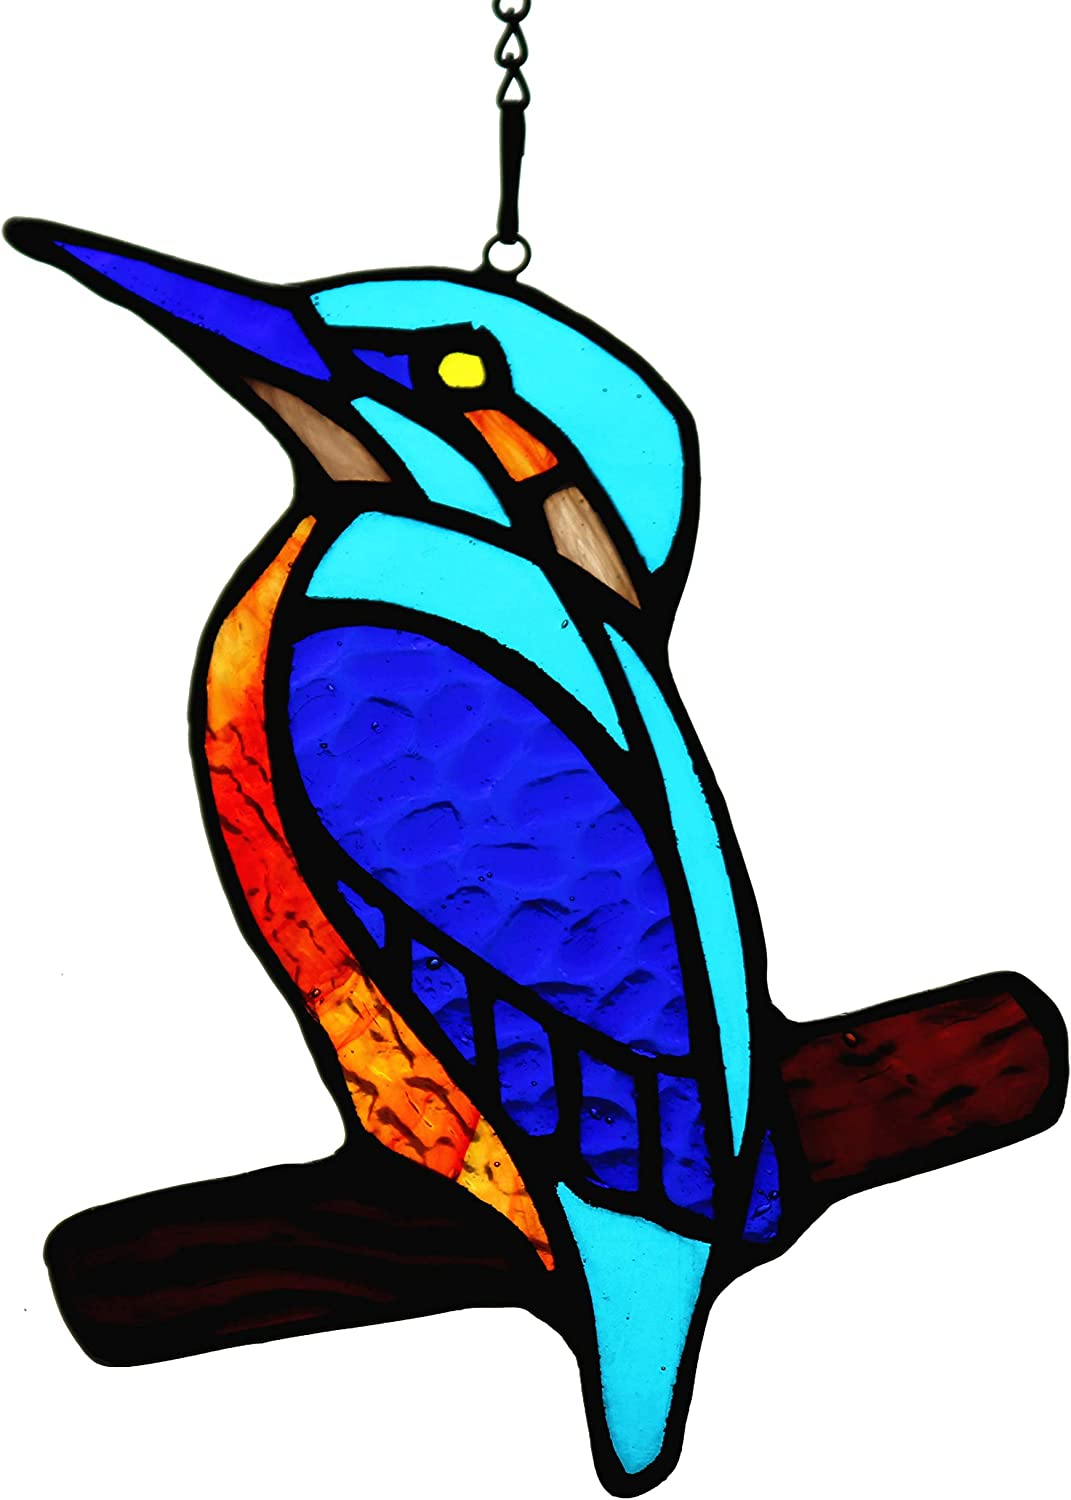 HAOSUM Blue Kingfisher Stained Glass Window Hangings Suncatcher Ornament with Chain Gift for Mom,Friends Size 4.2''×4.5''